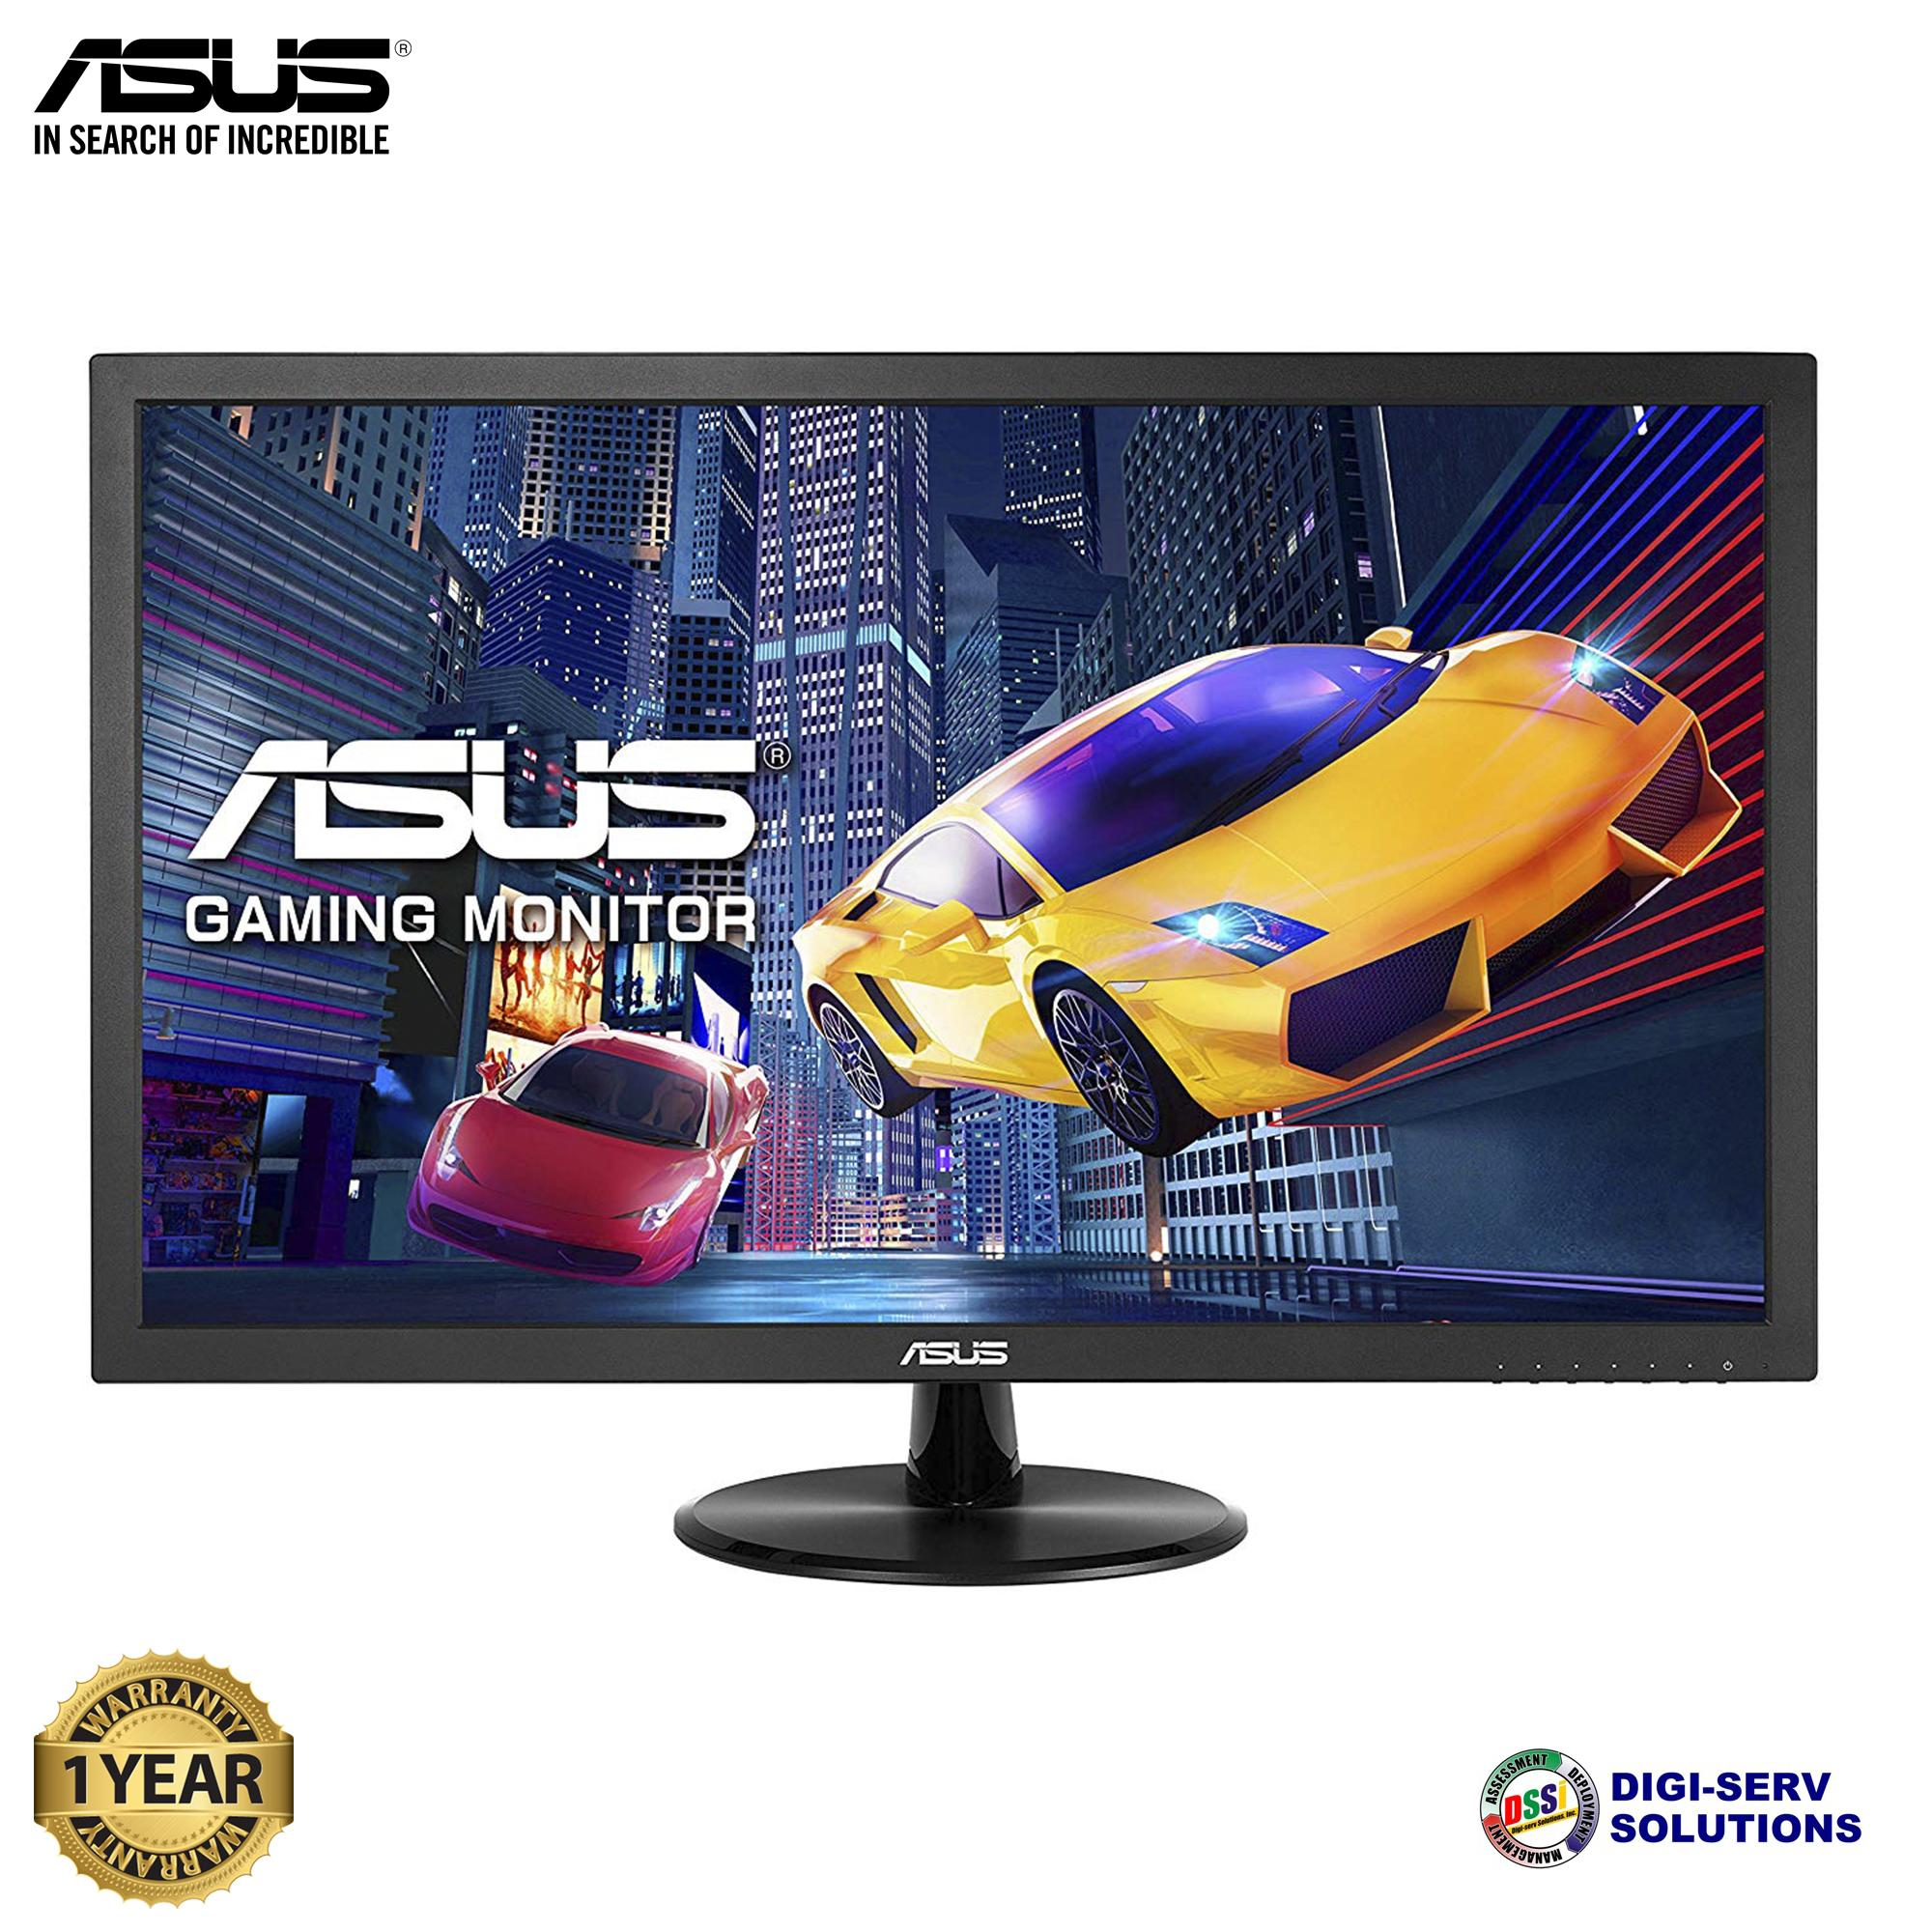 Nietypowy Okaz Asus Philippines - Asus PC Monitors for sale - prices & reviews WH27